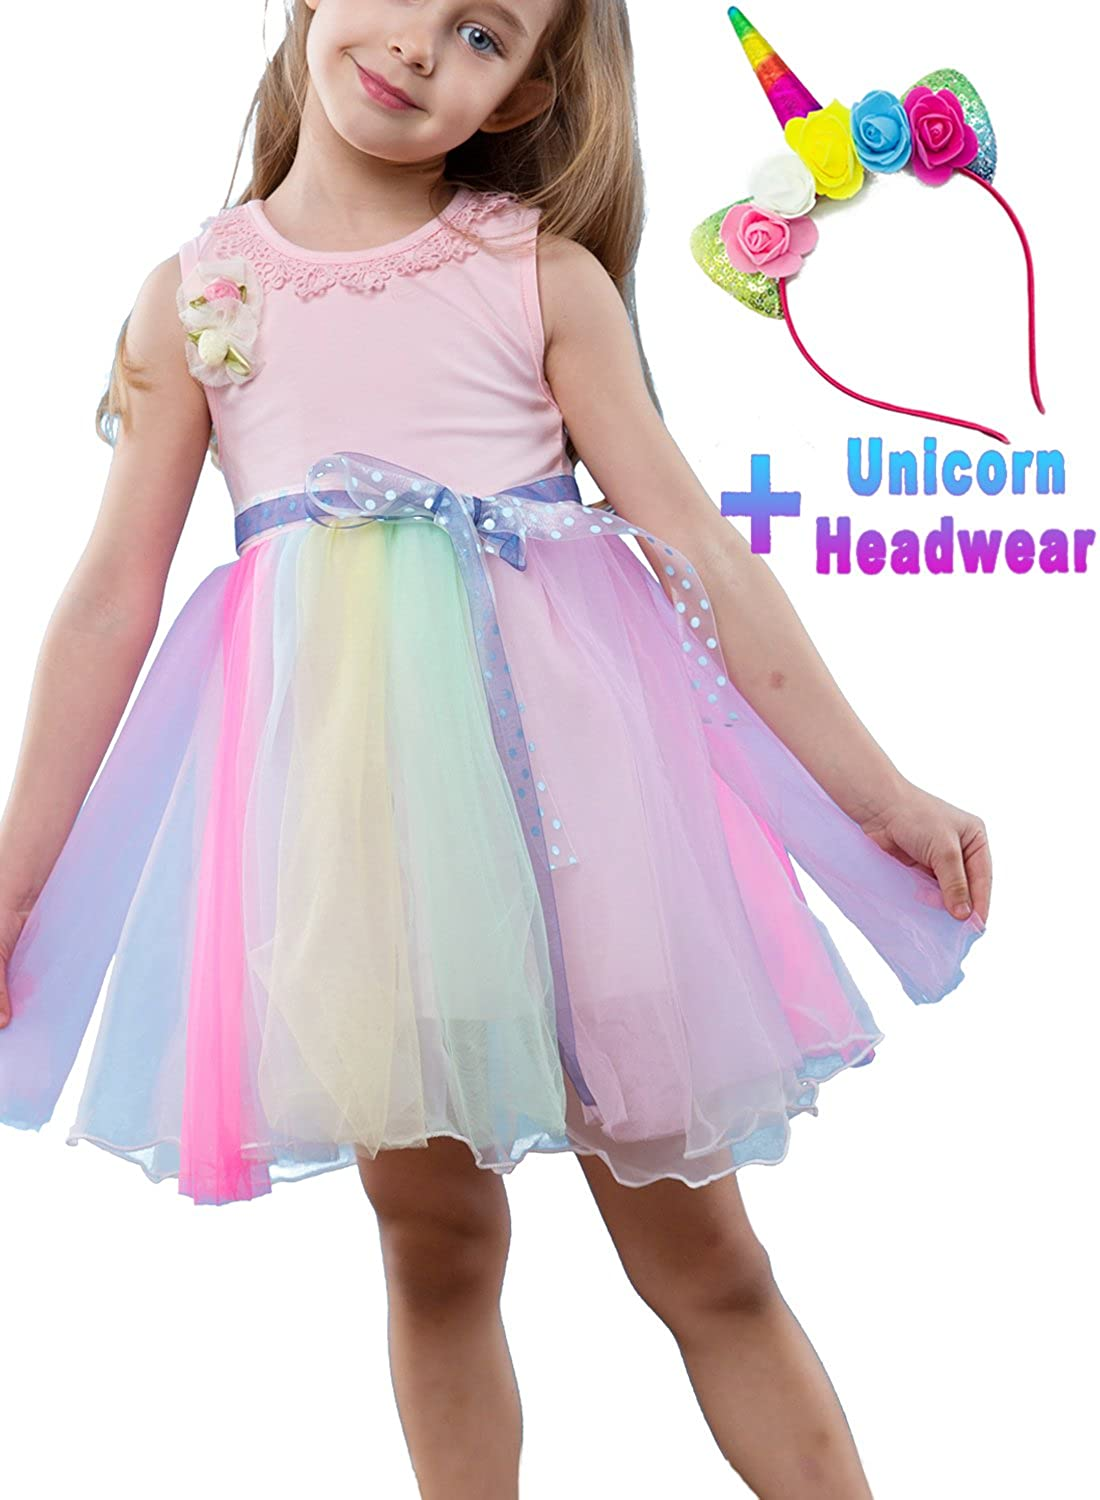 80eacde8f35 ... Dress + 1  Unicorn Headband (GREAT GIFT).     Size Selection - These  has 2 colours(GREEN   PINK) and from 3-12 year old girl US regular height  to chose.